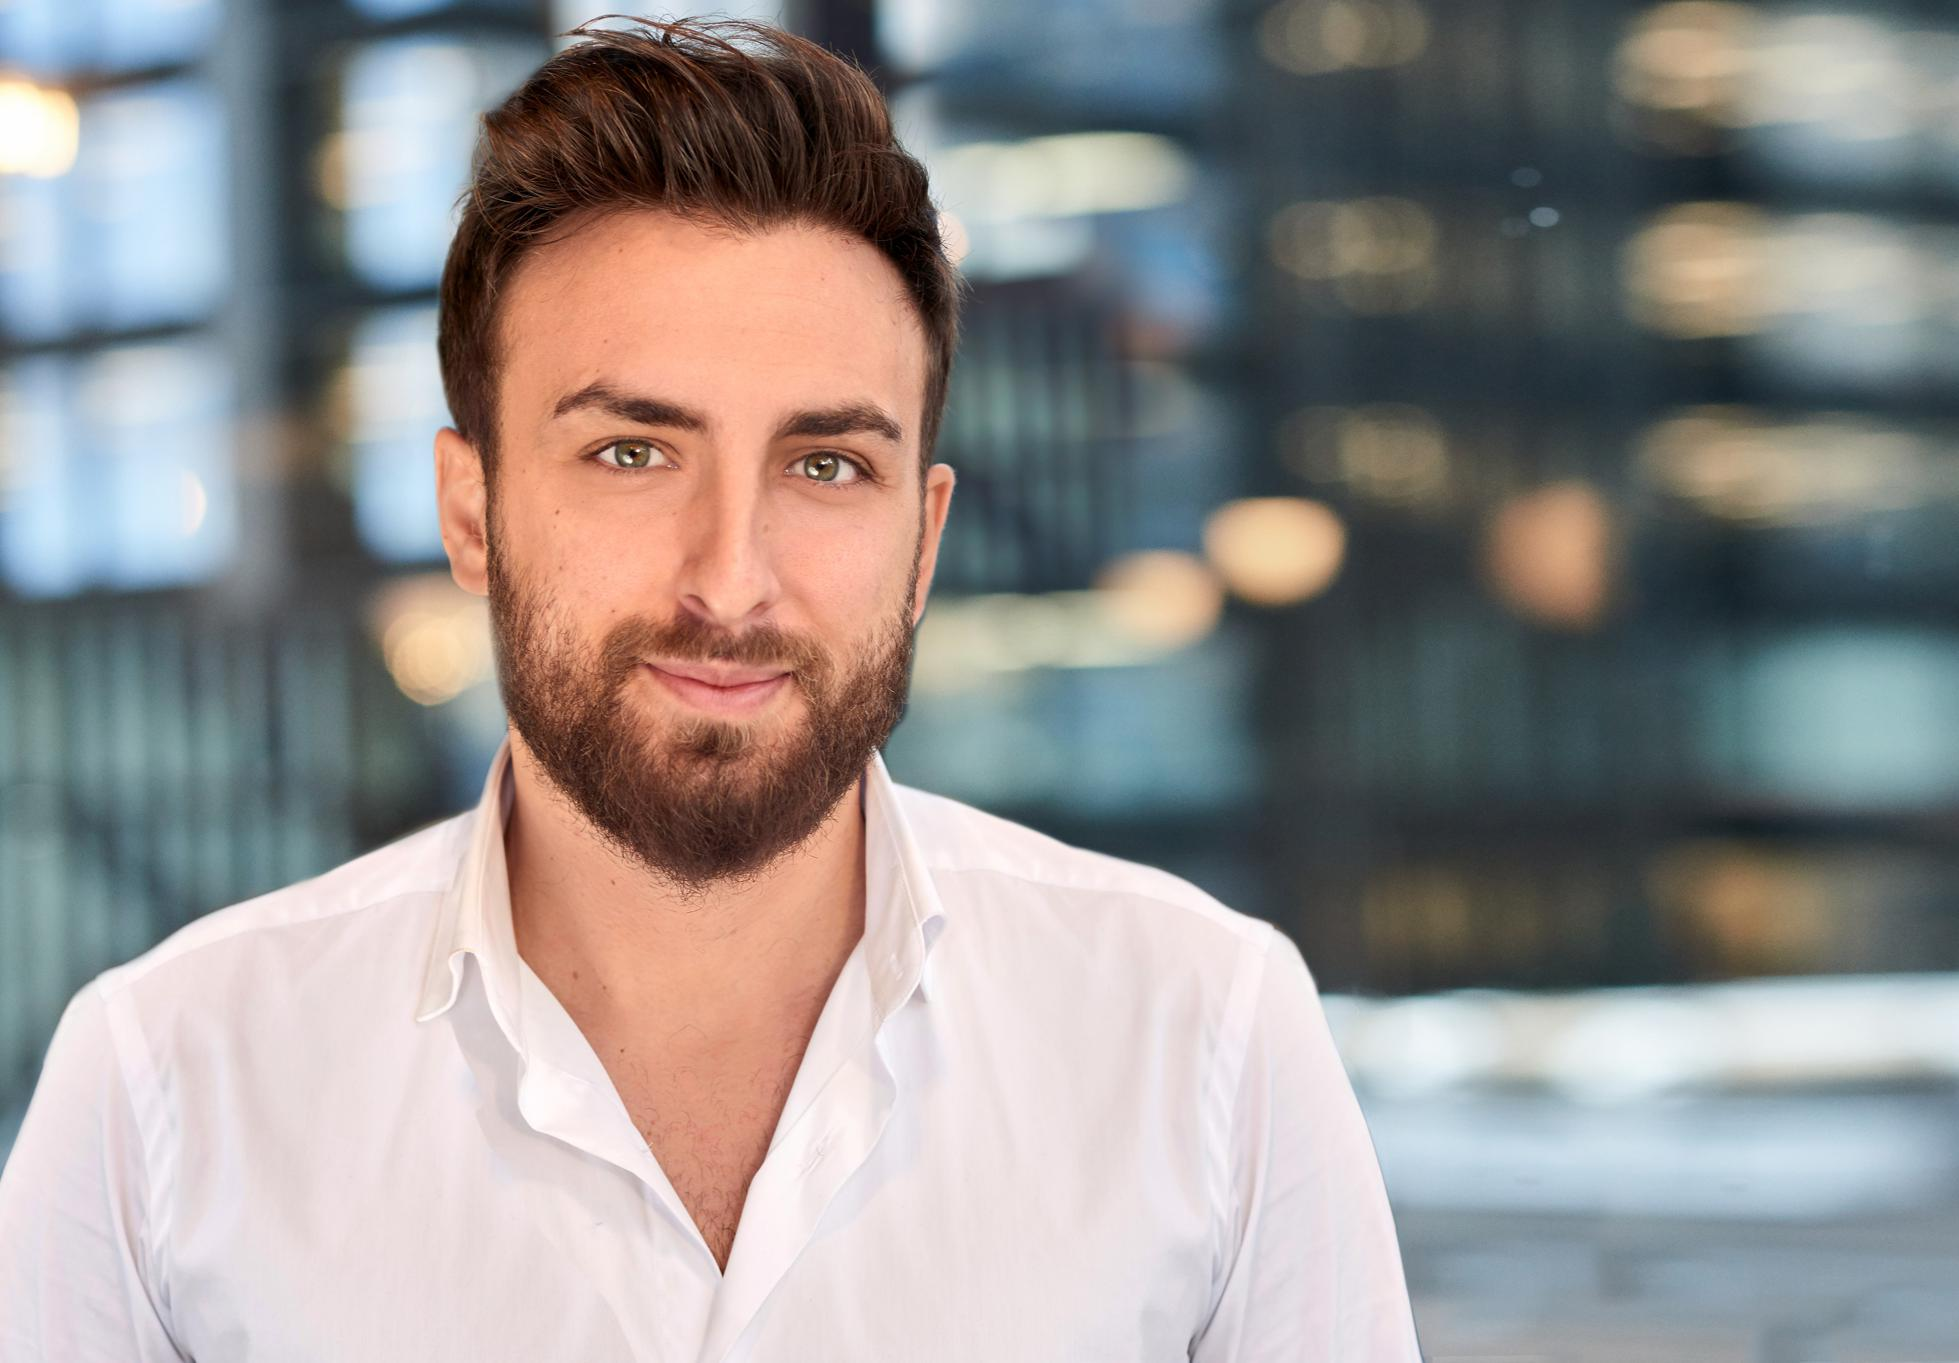 George Pallis, founder and CEO of Manual, has raised $30 million in a Series A round for the men's health startups.